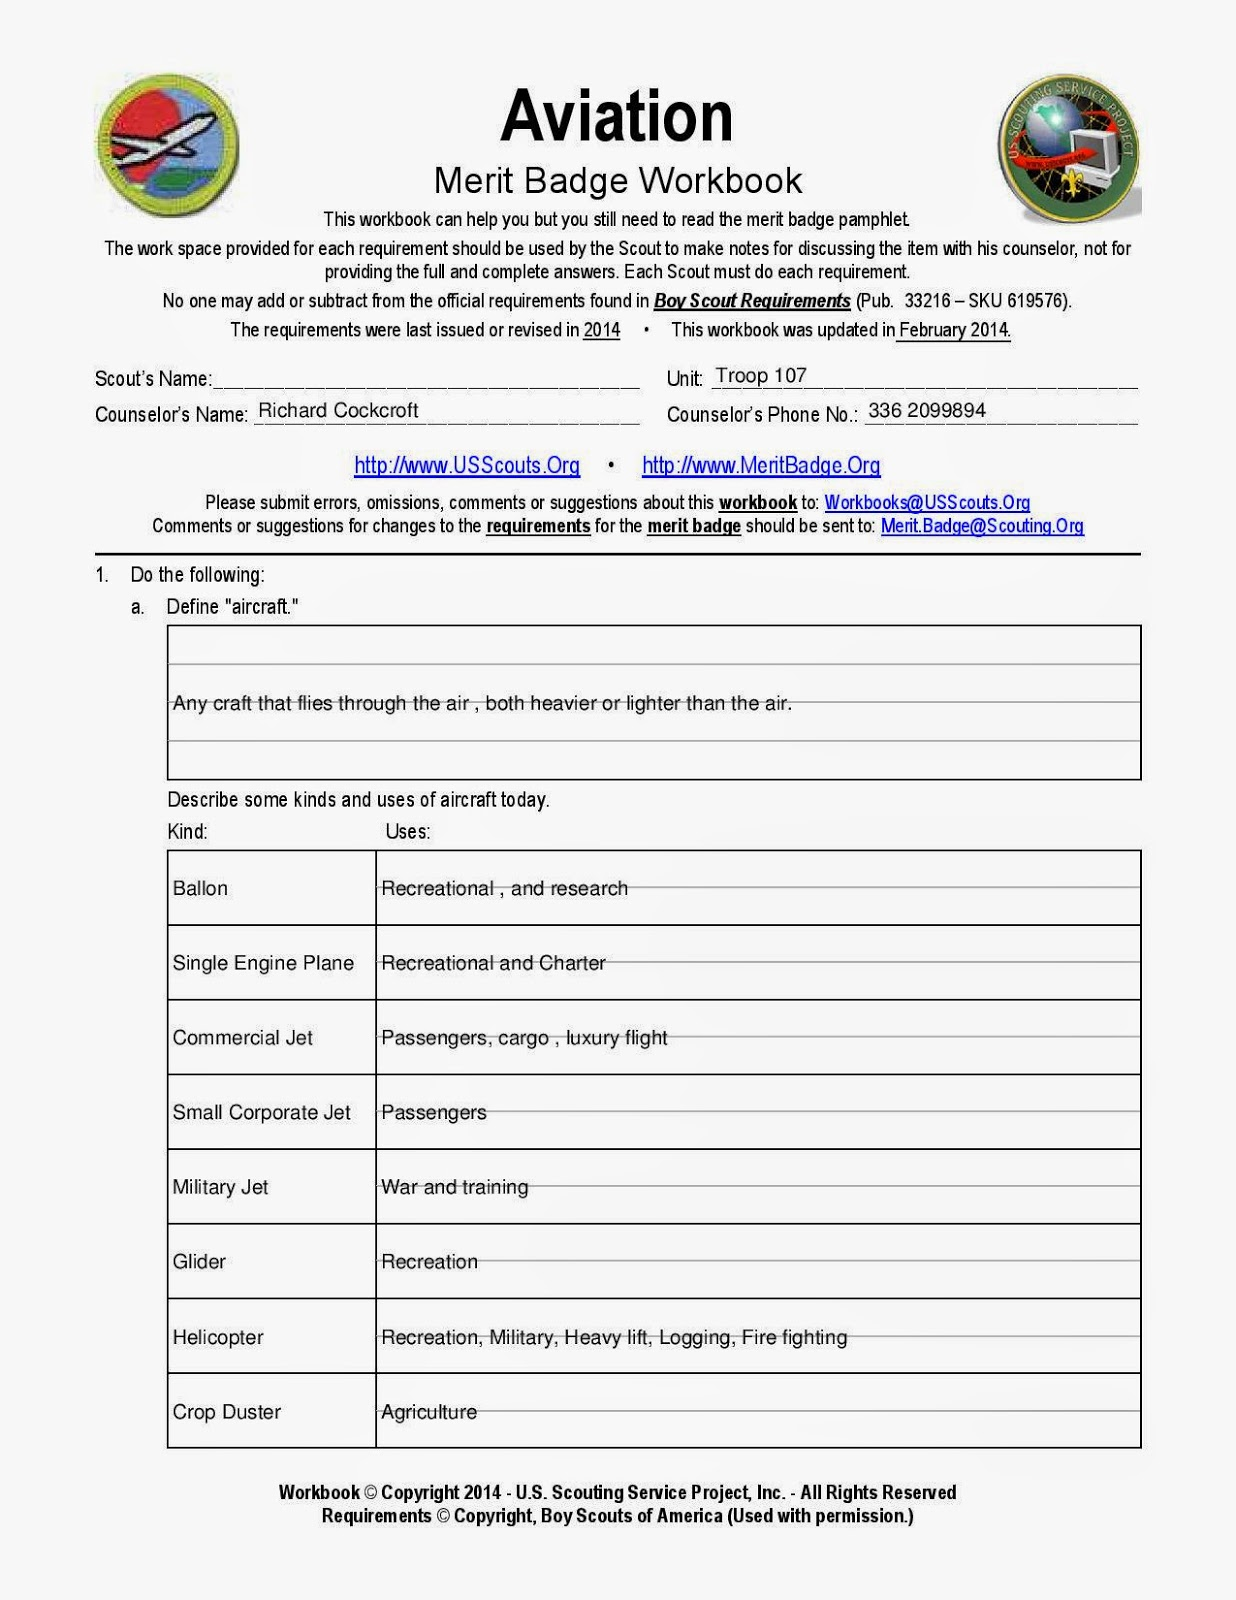 Worksheets Camping Merit Badge Worksheet worksheets hiking merit badge worksheet answers cricmag free grass fedjp boy scout troop